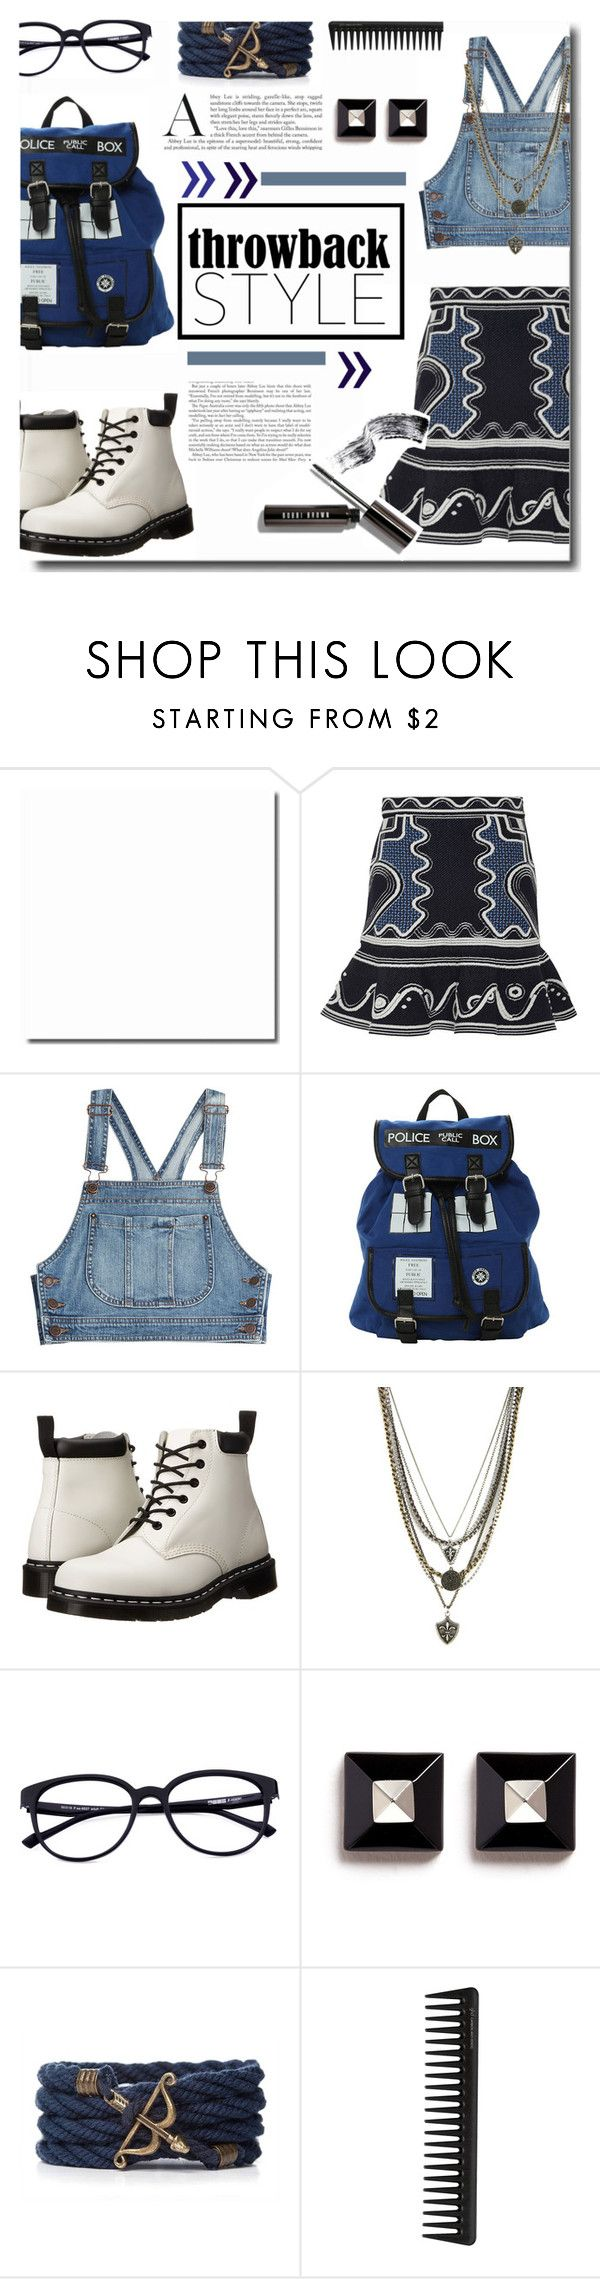 """""""Sassy Girl Style"""" by kts-desilva ❤ liked on Polyvore featuring Peter Pilotto, Moschino, Dr. Martens, Ettika, Givenchy, GHD and throwbackstyle"""